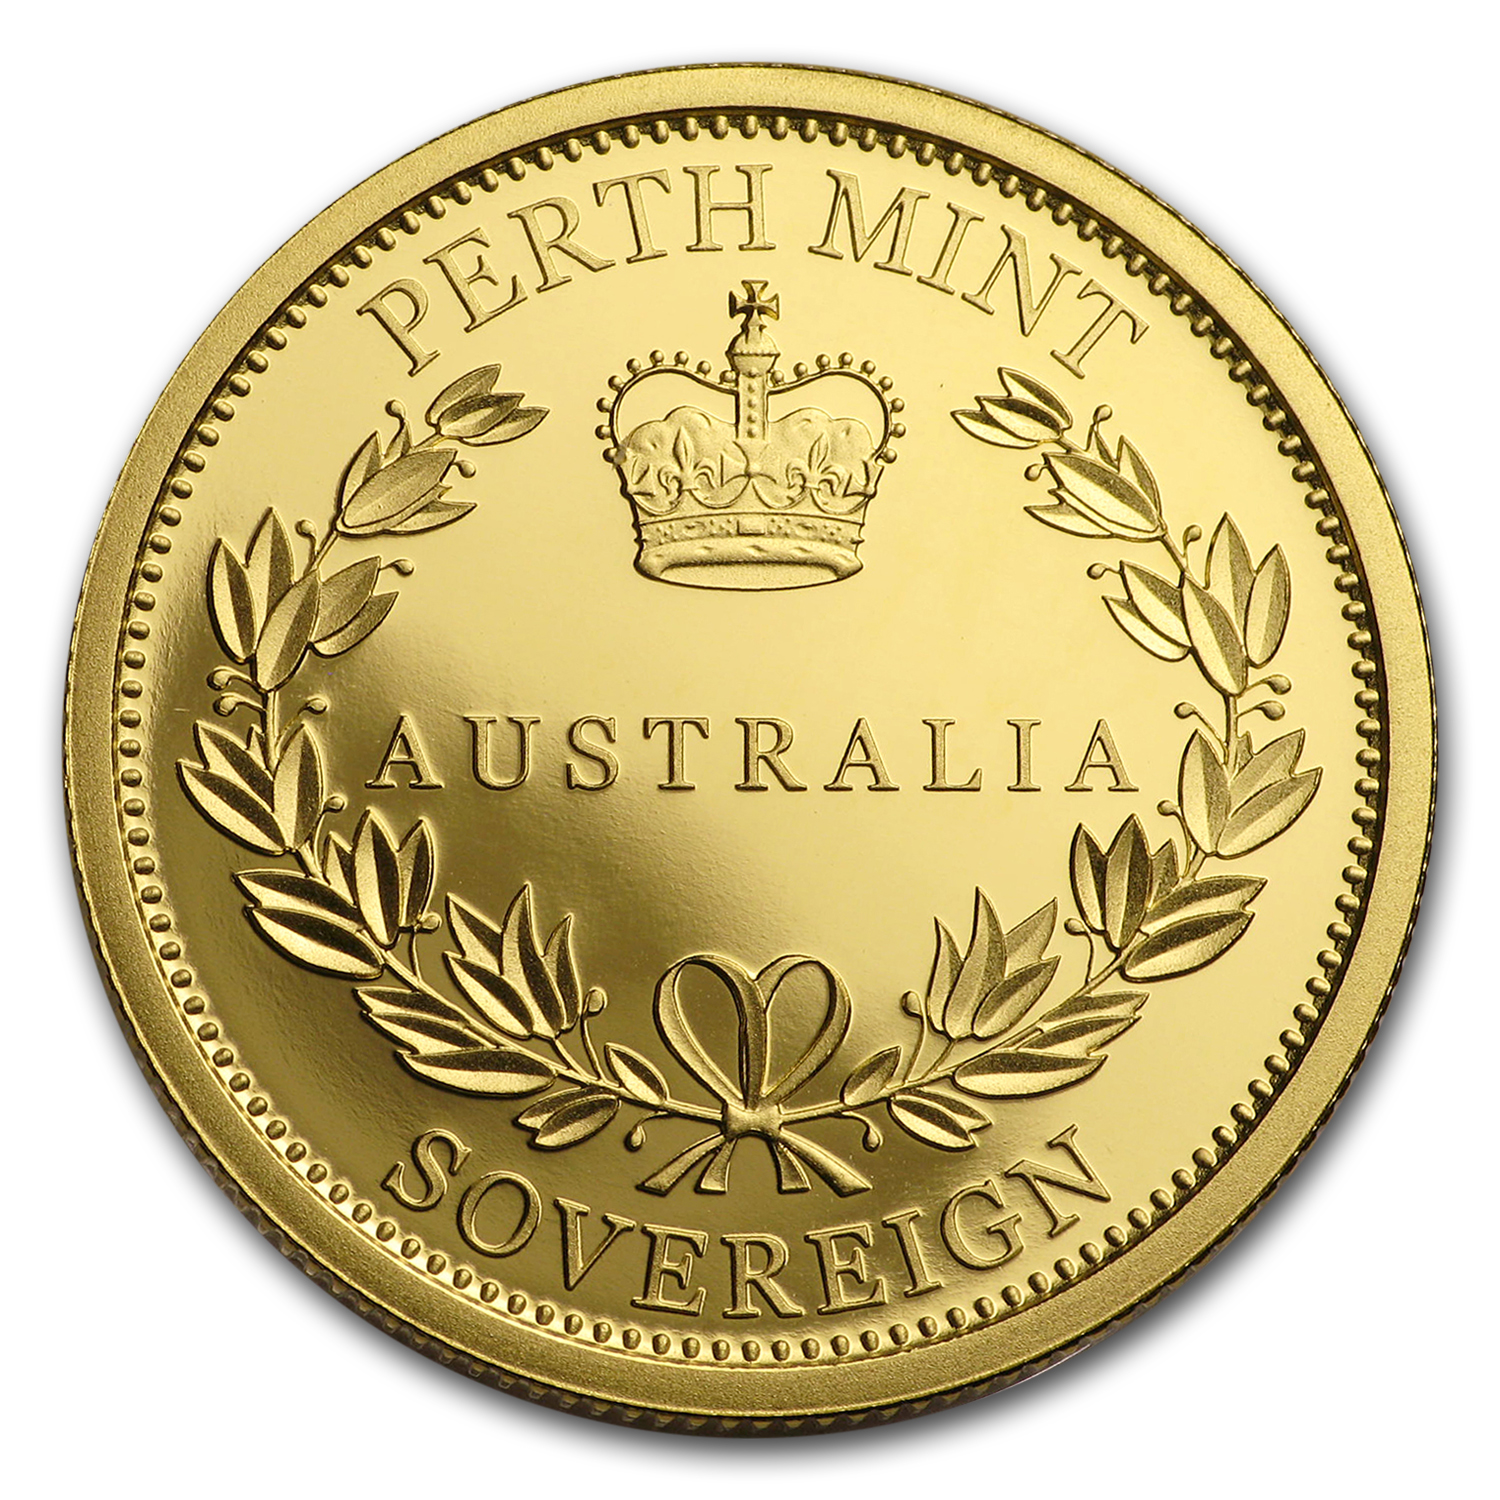 2017 Australia Gold Sovereign Proof